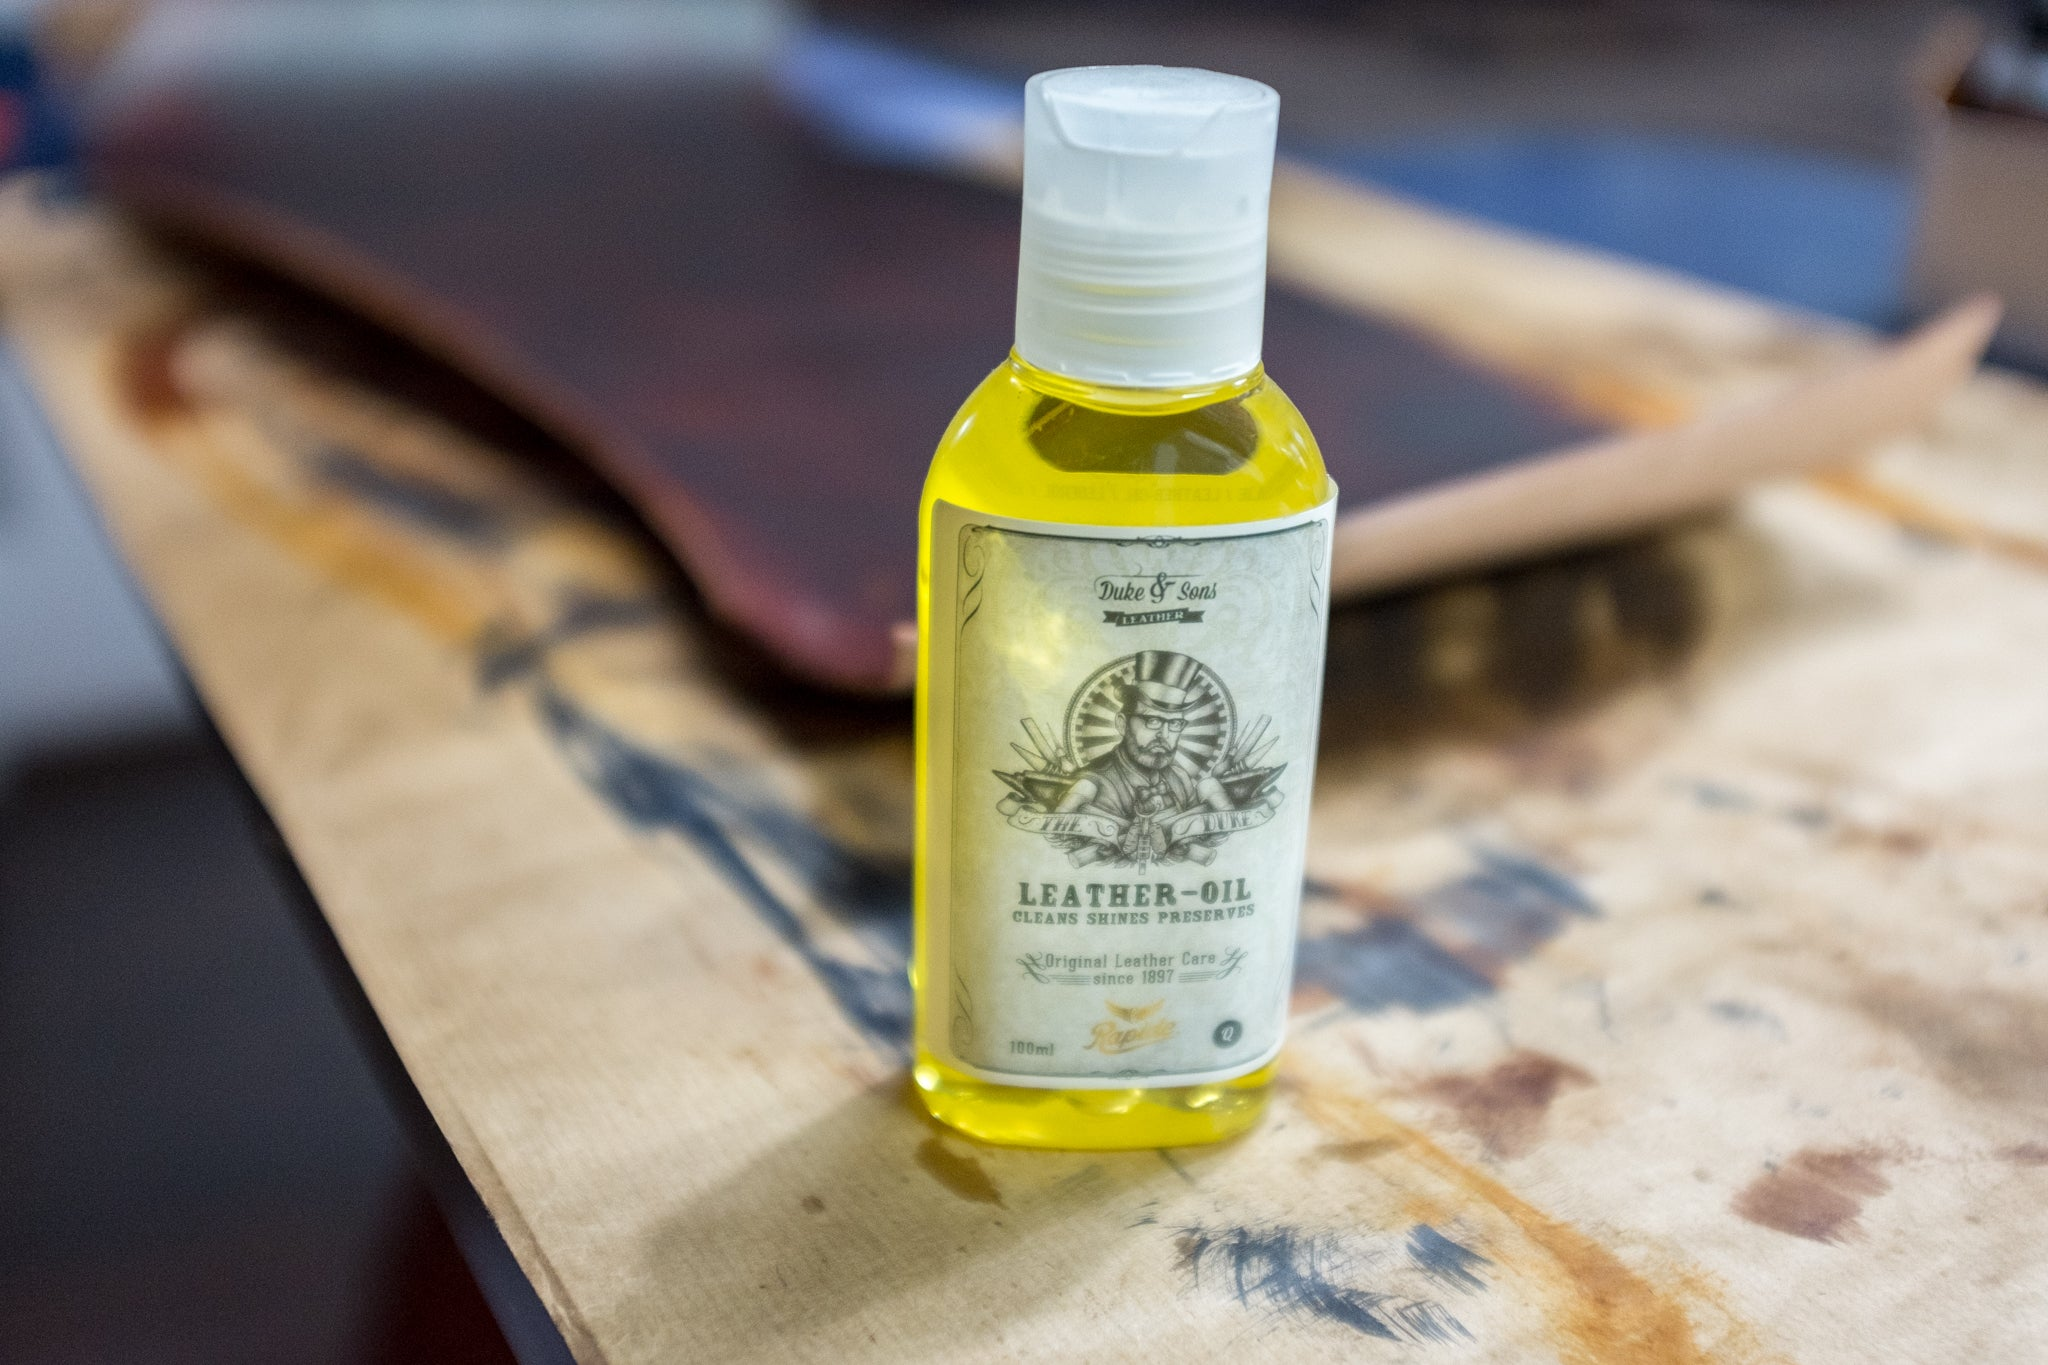 Soaking in Duke & Sons Leather Oil.